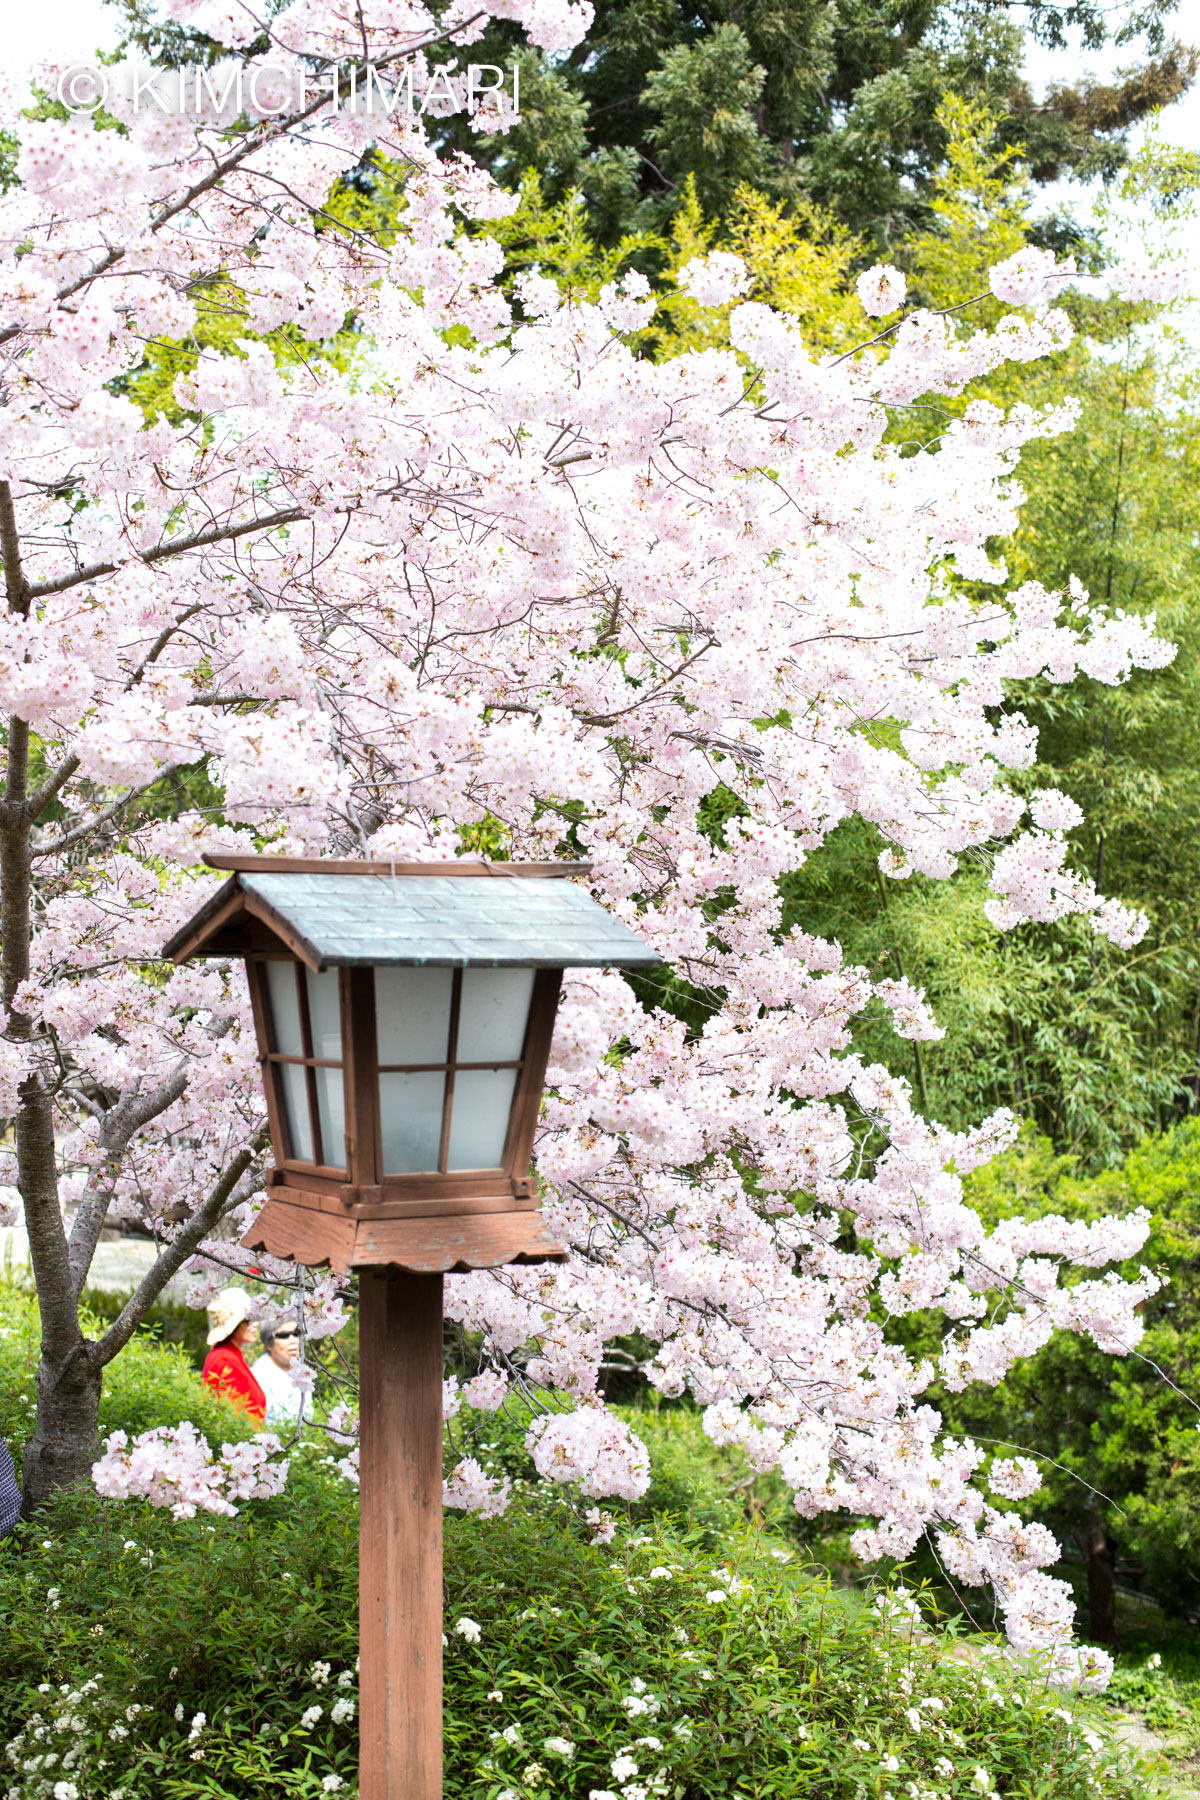 Cherry Blossoms and Lamp at Hakone Gardens